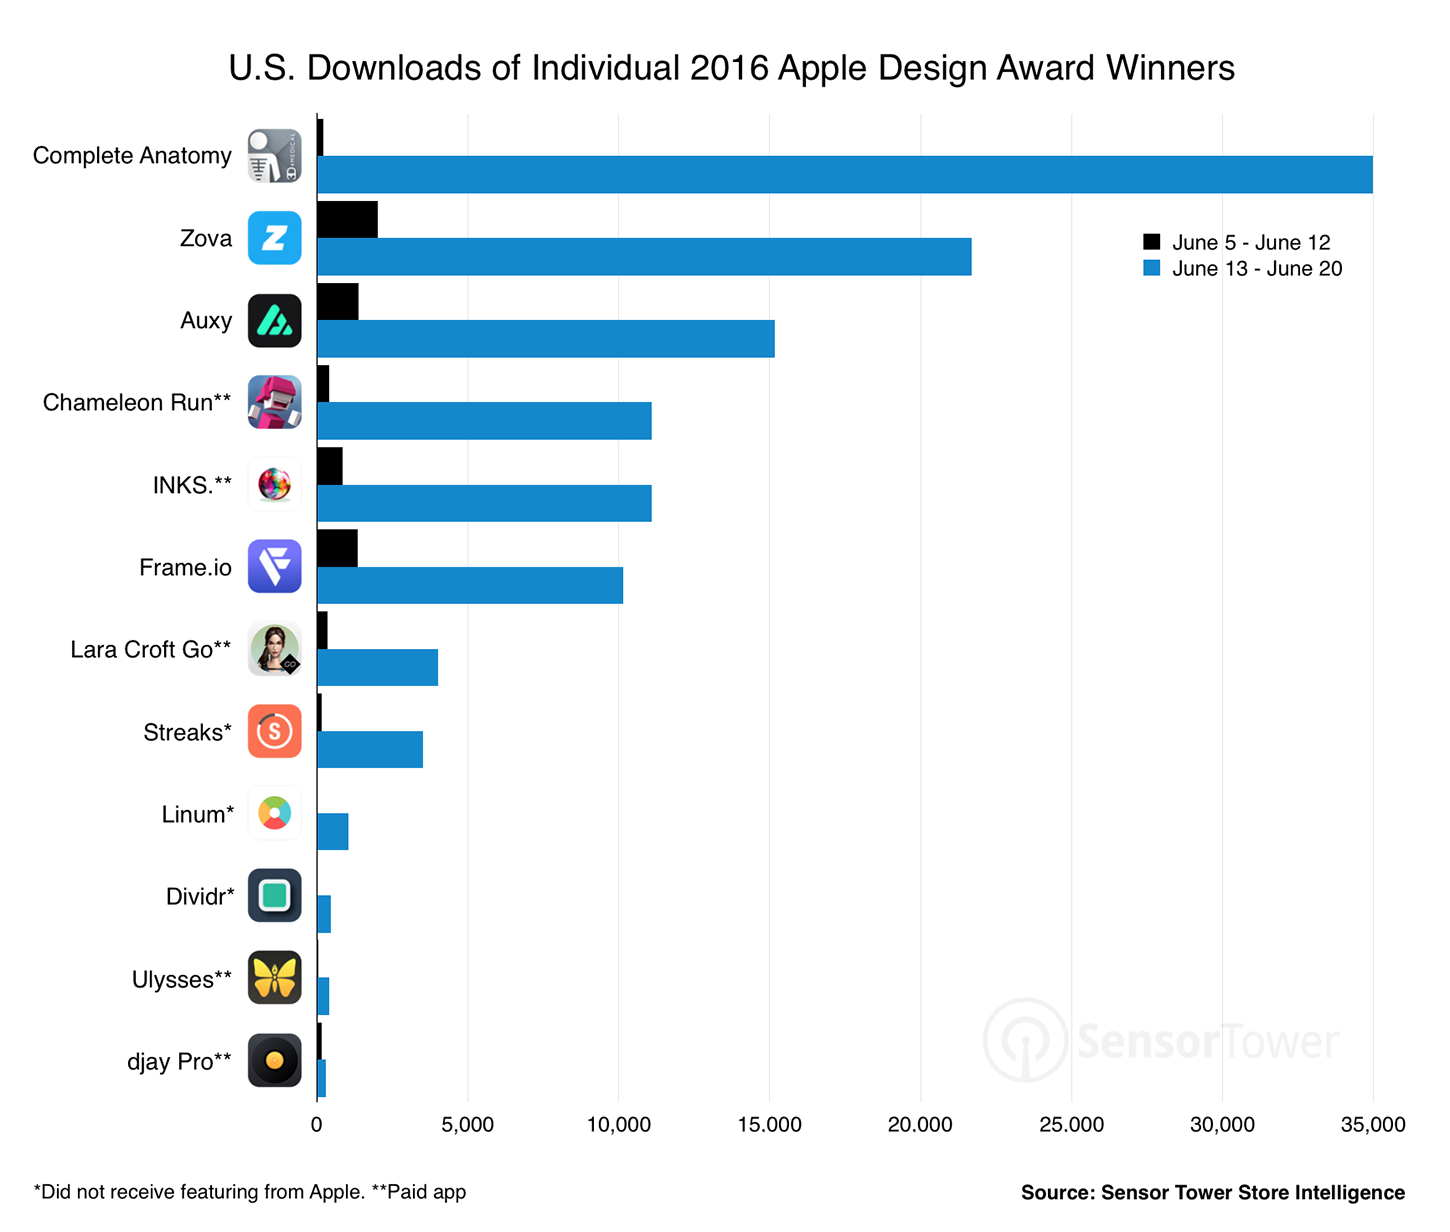 apple-design-awards-2016-download-ranking